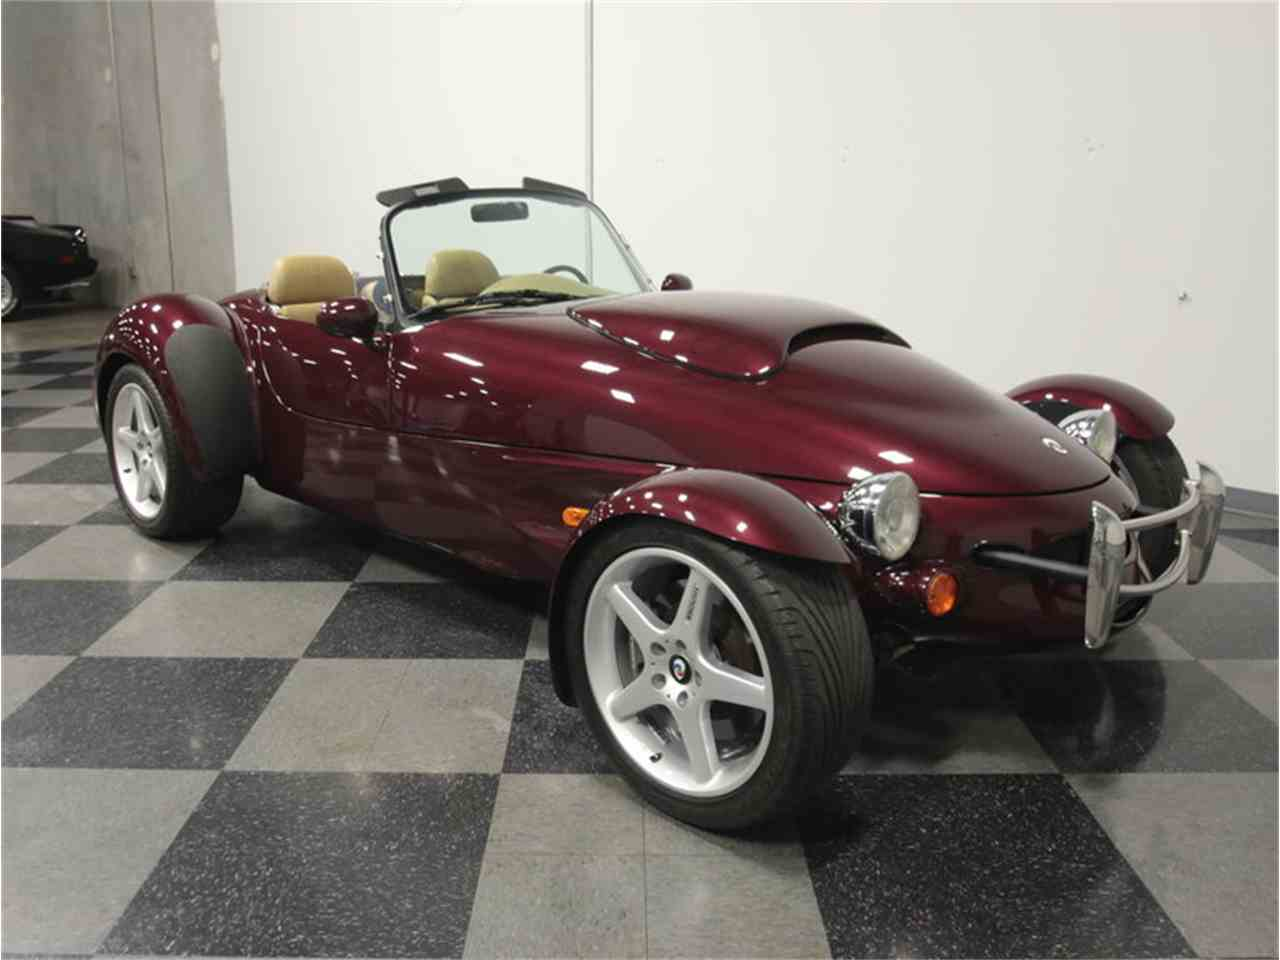 Large Picture of '98 Panoz AIV Roadster Supercharged Offered by Streetside Classics - Atlanta - JPDH